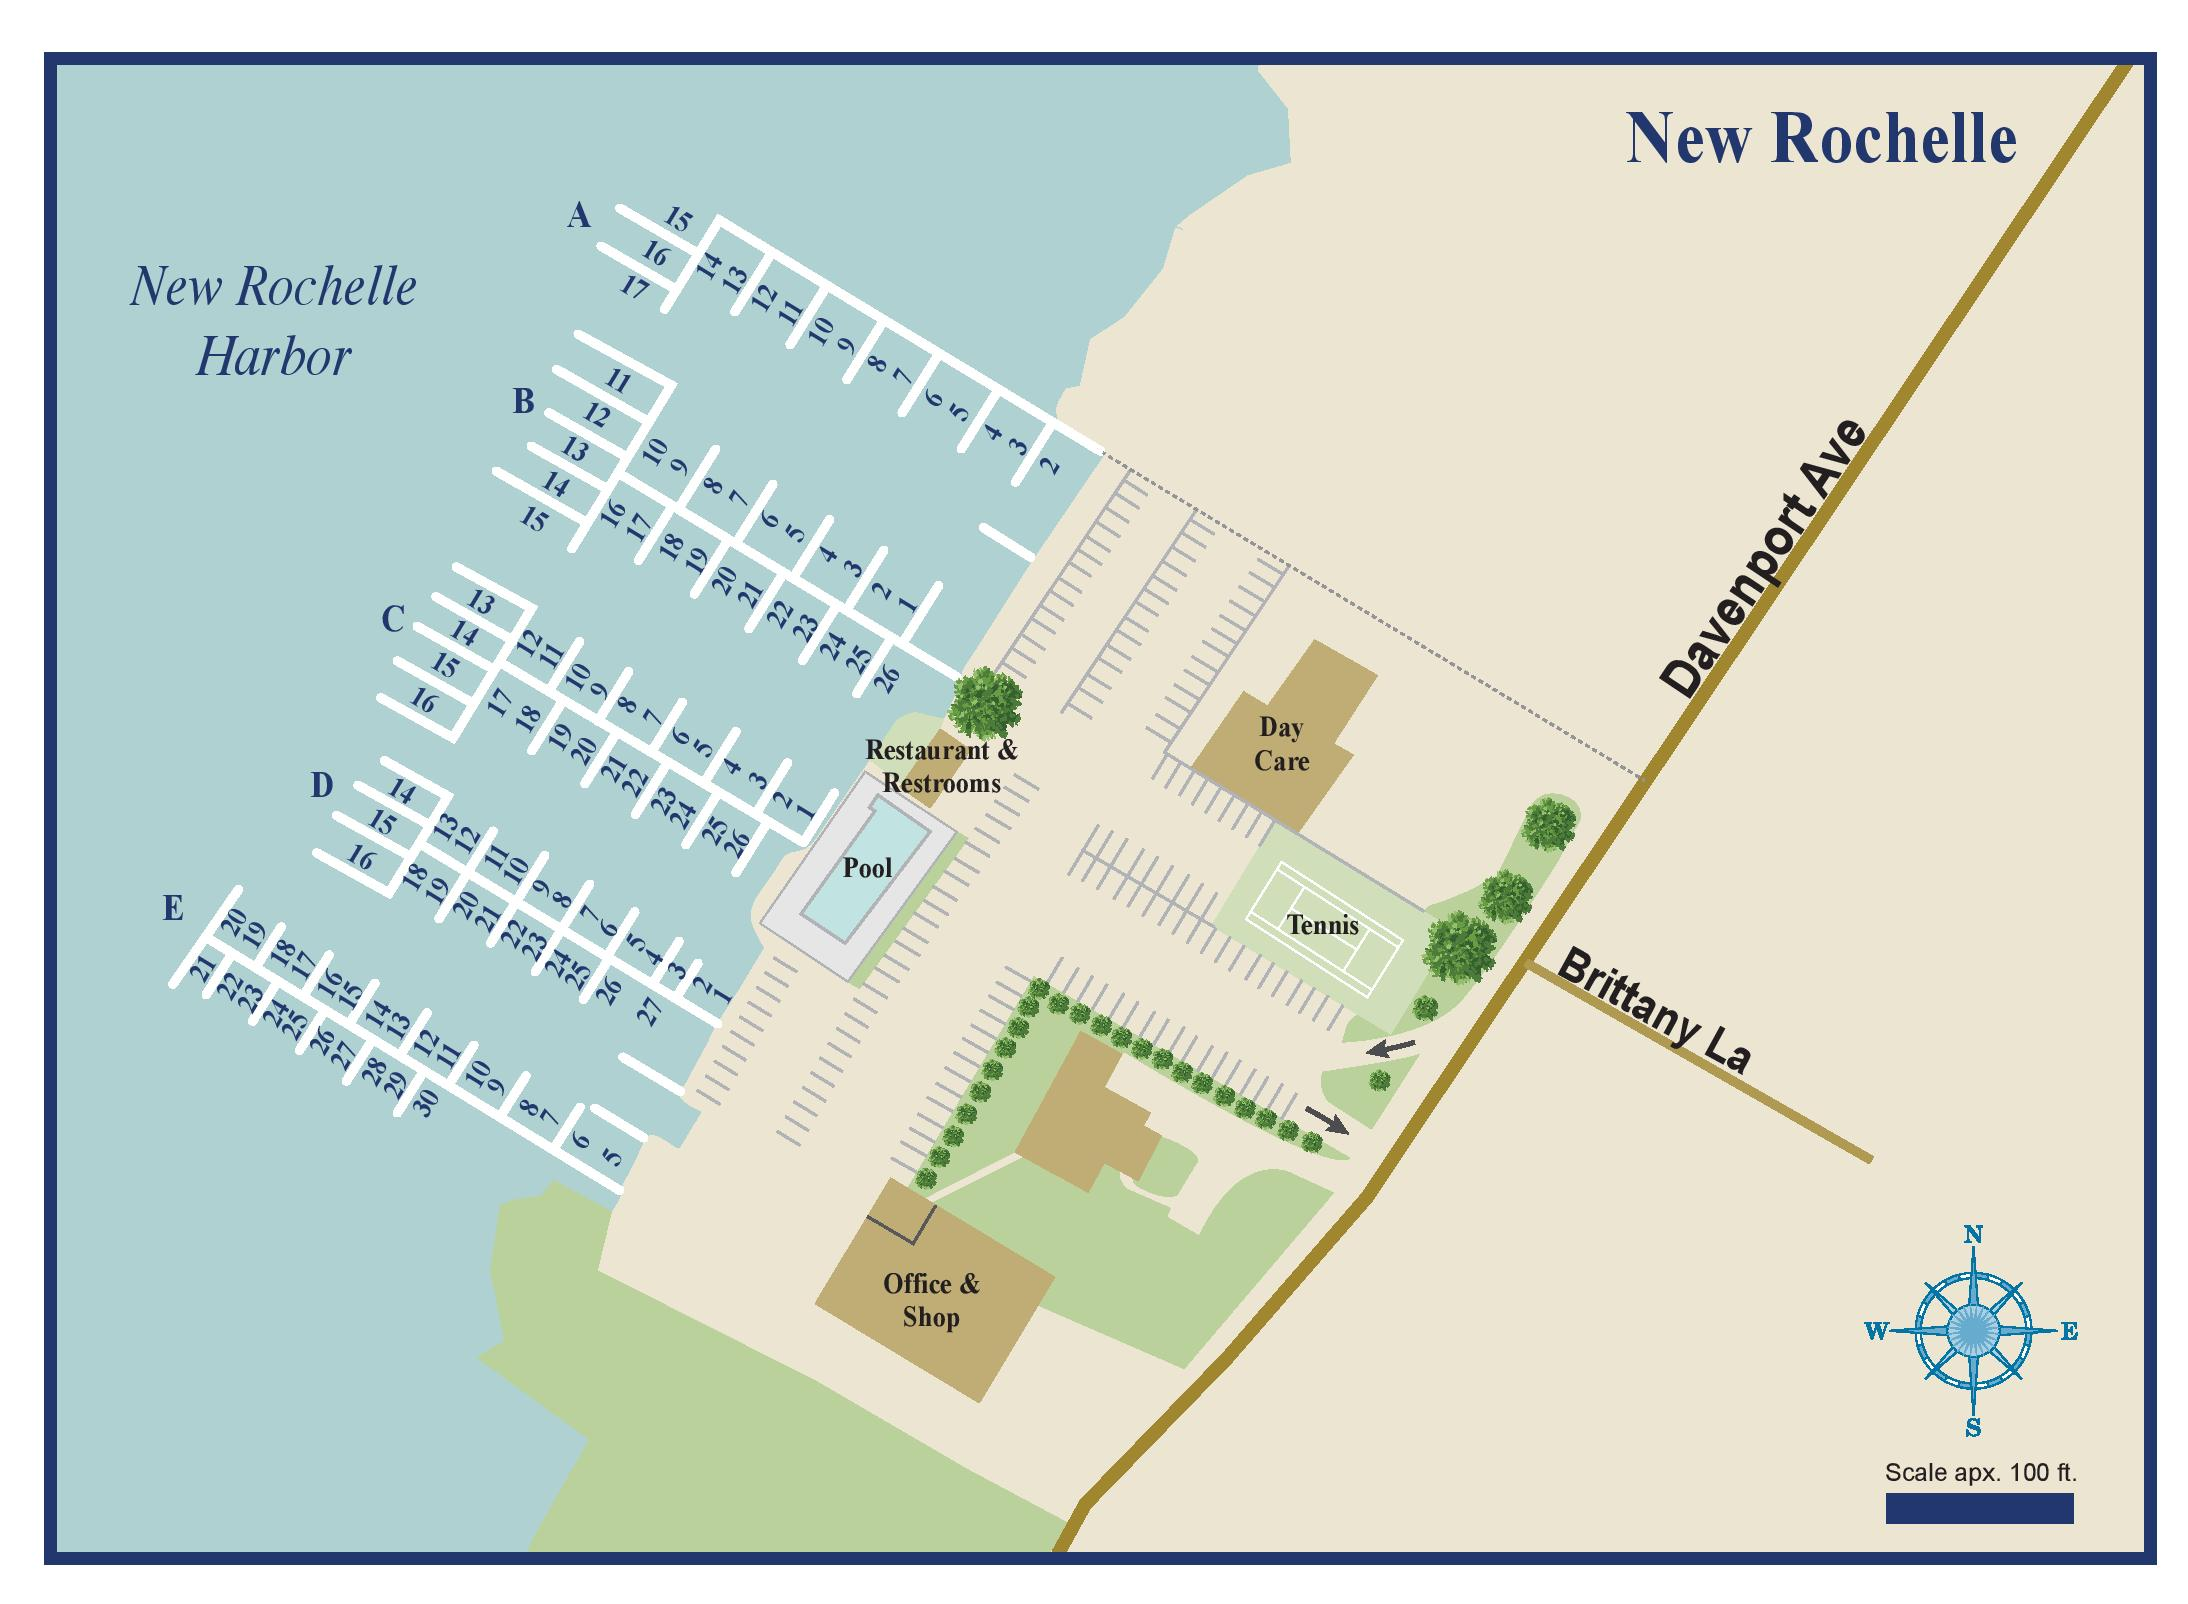 New Rochelle To Jfk Airport